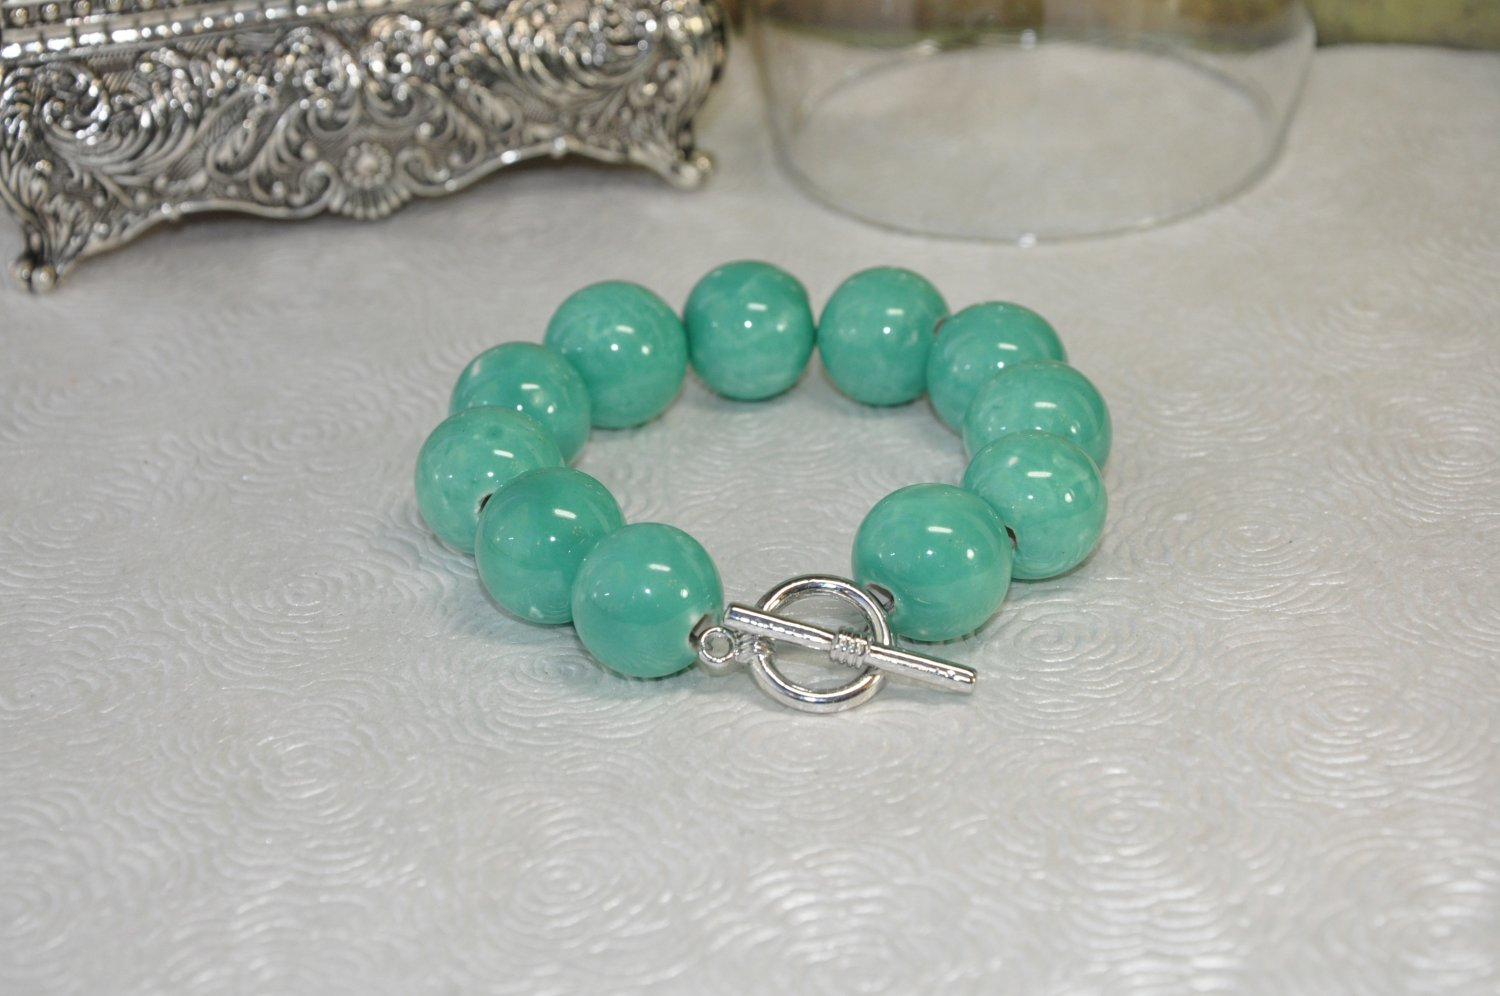 Chunky Green Round Stone Bead Bracelet handcrafted by Bead Studio Artist